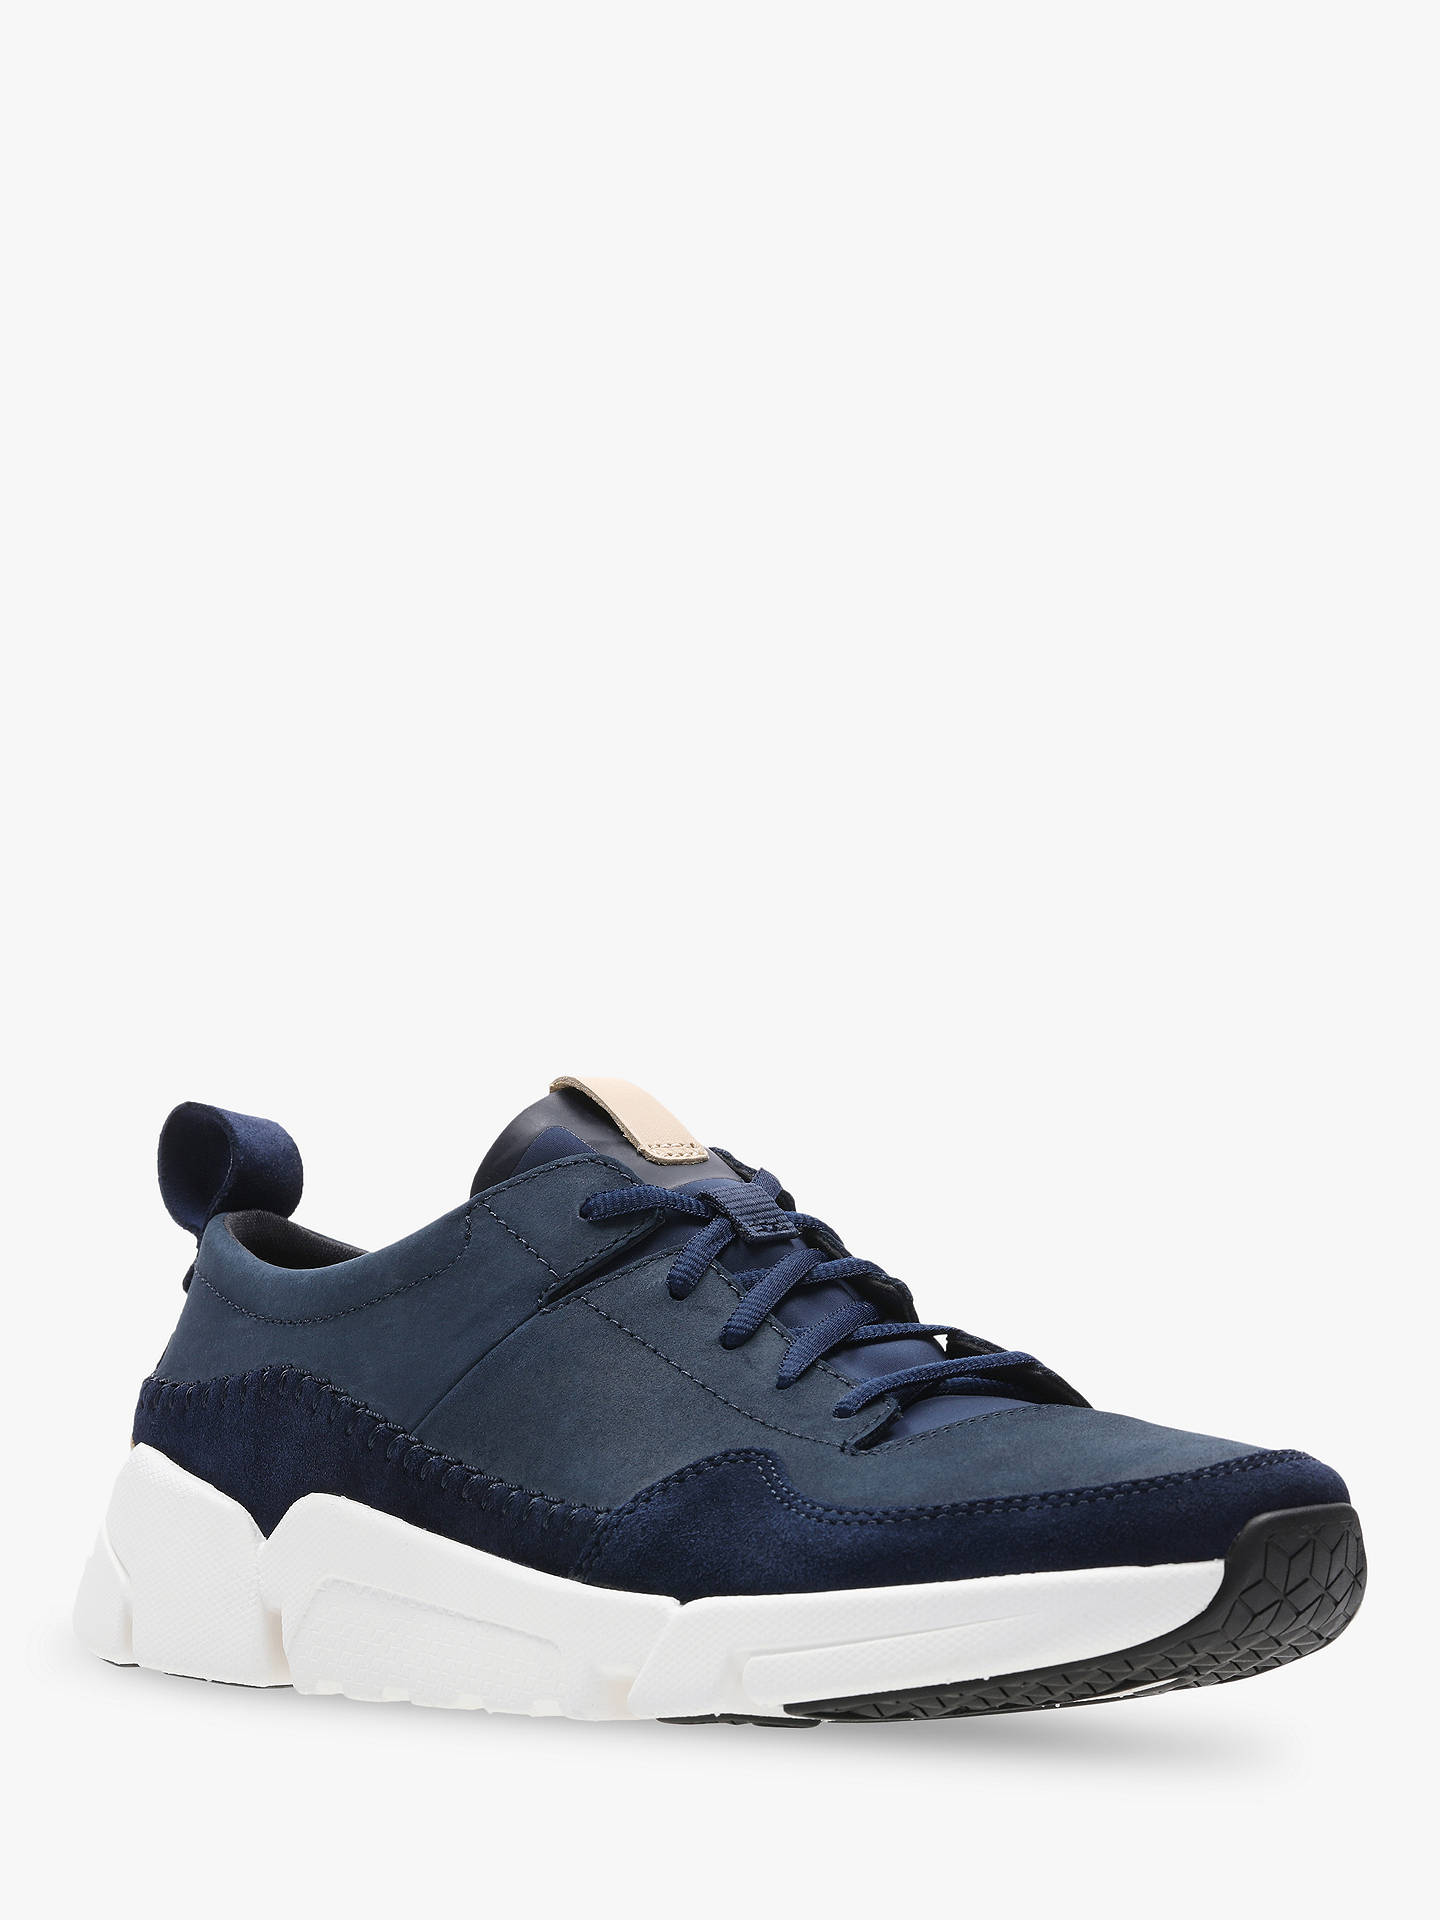 Buy Clarks TriActive Run Leather Trainers, Navy, 6 Online at johnlewis.com